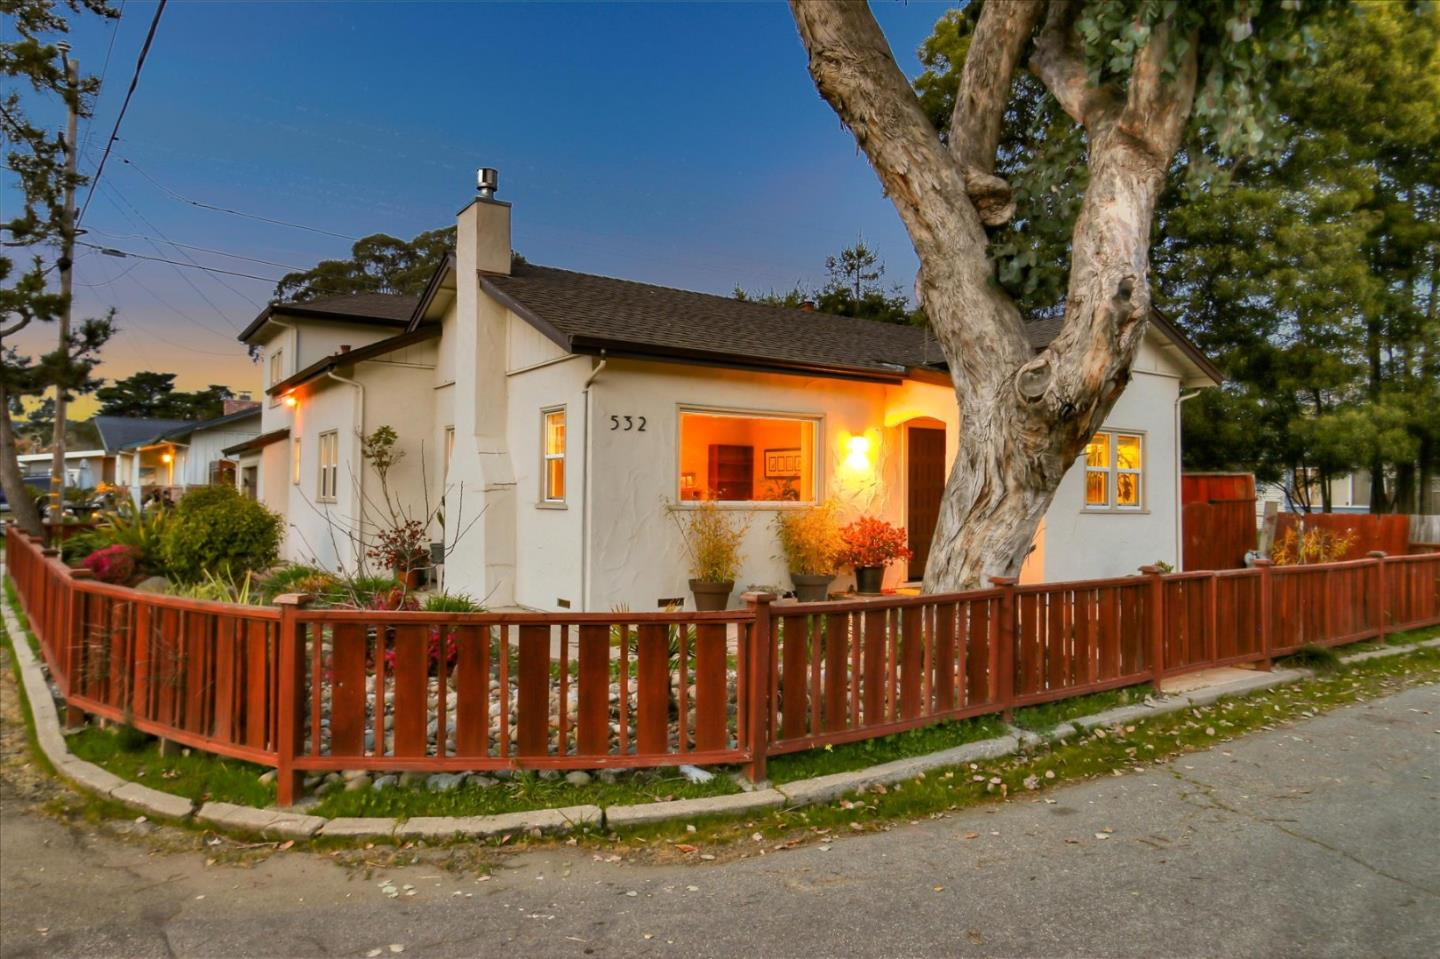 532 Cedar Street, Aptos, is located just a few blocks from Seacliff State Beach. This 2 bedroom, 2 bathroom, 1,354 SqFt home was remodeled and updated in 2011. The master bedroom is located on the ground floor. Situated on a quiet corner, the 4,791 Sq Ft lot is big enough for nicely landscaped gardens and a sunny back yard. Updates include wood, carpet and tile floors downstairs, remodeled kitchen and bathrooms, custom cabinets, granite counters, double pane windows, indoor laundry area, water softener, and an on demand hot water heater.